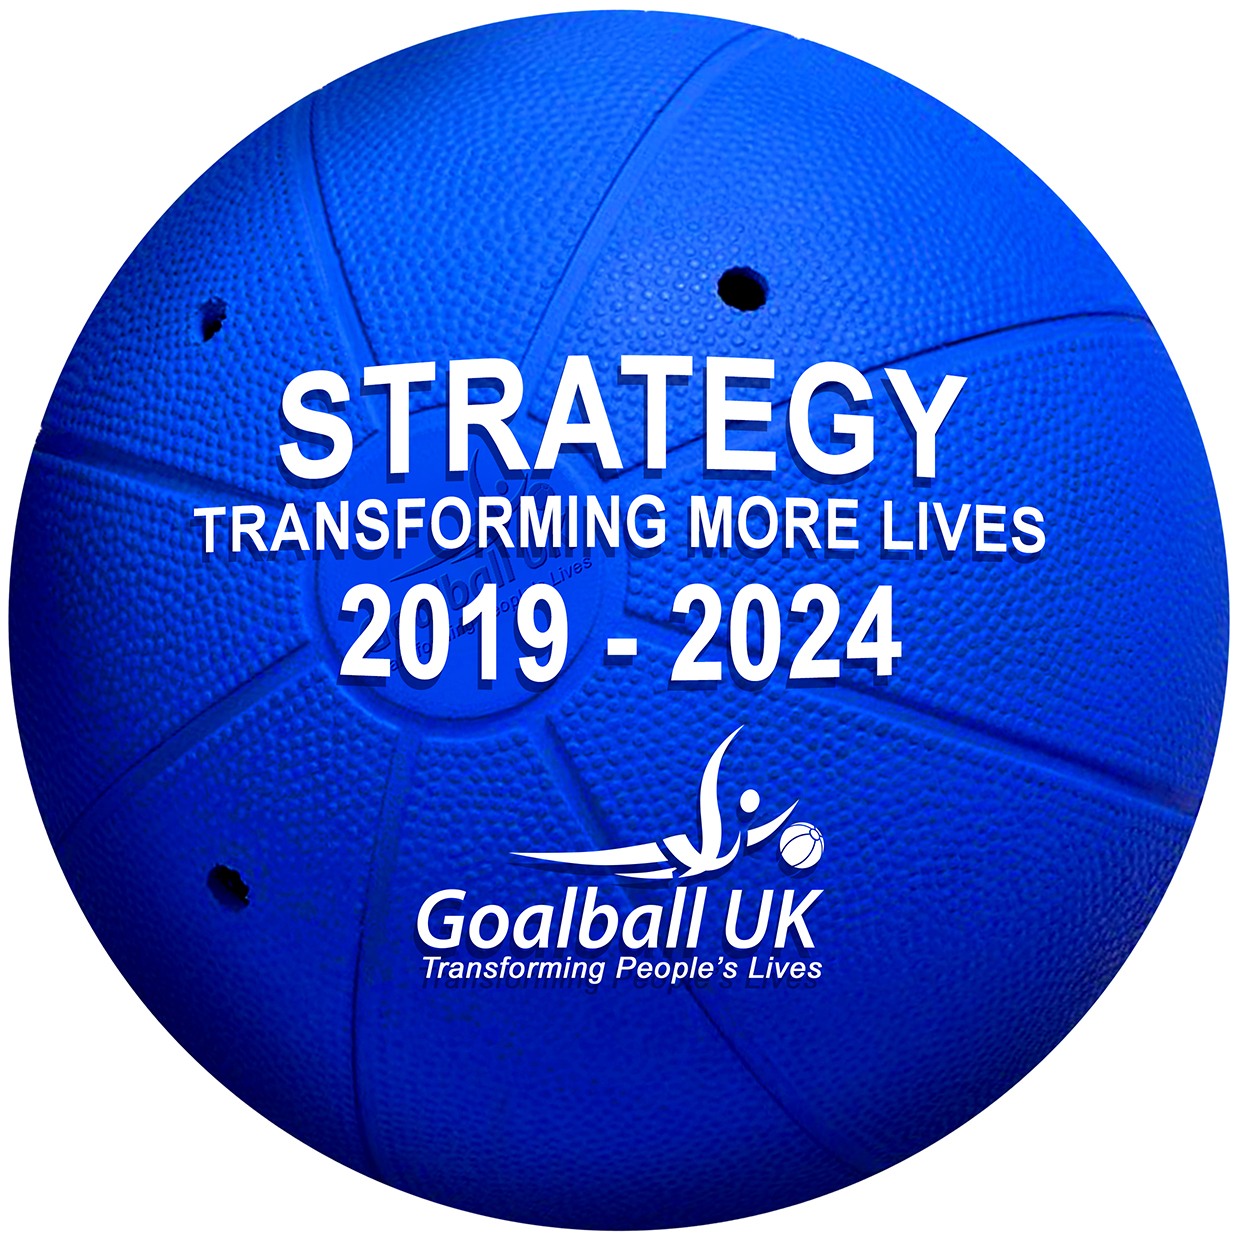 Goalball UK strategy 2019-2024